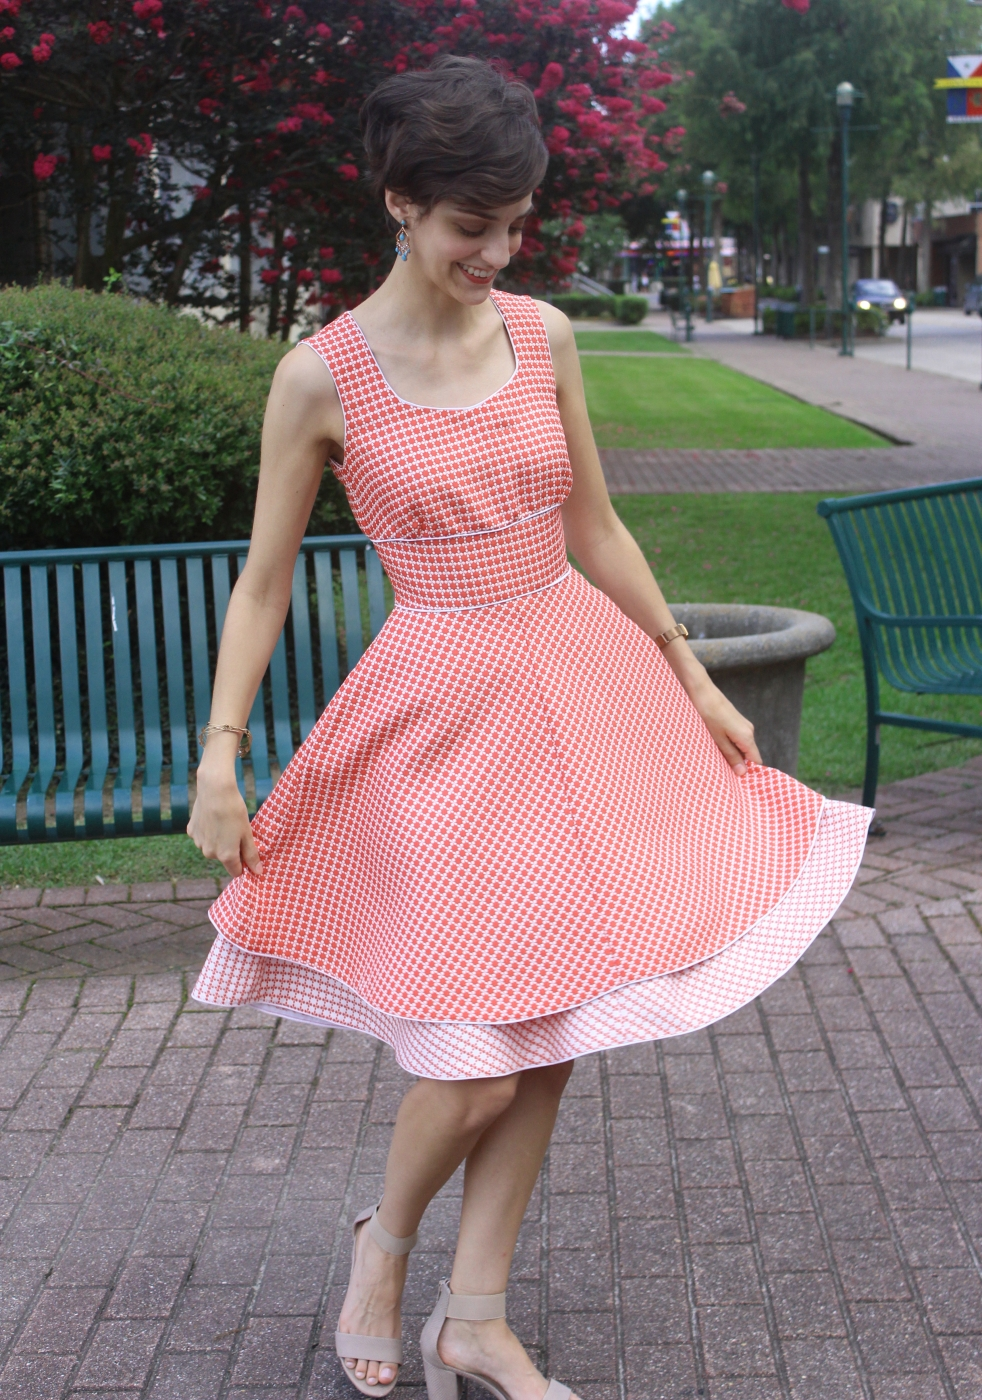 Coral and cream birthday dress. Full, twirly dobule skirt